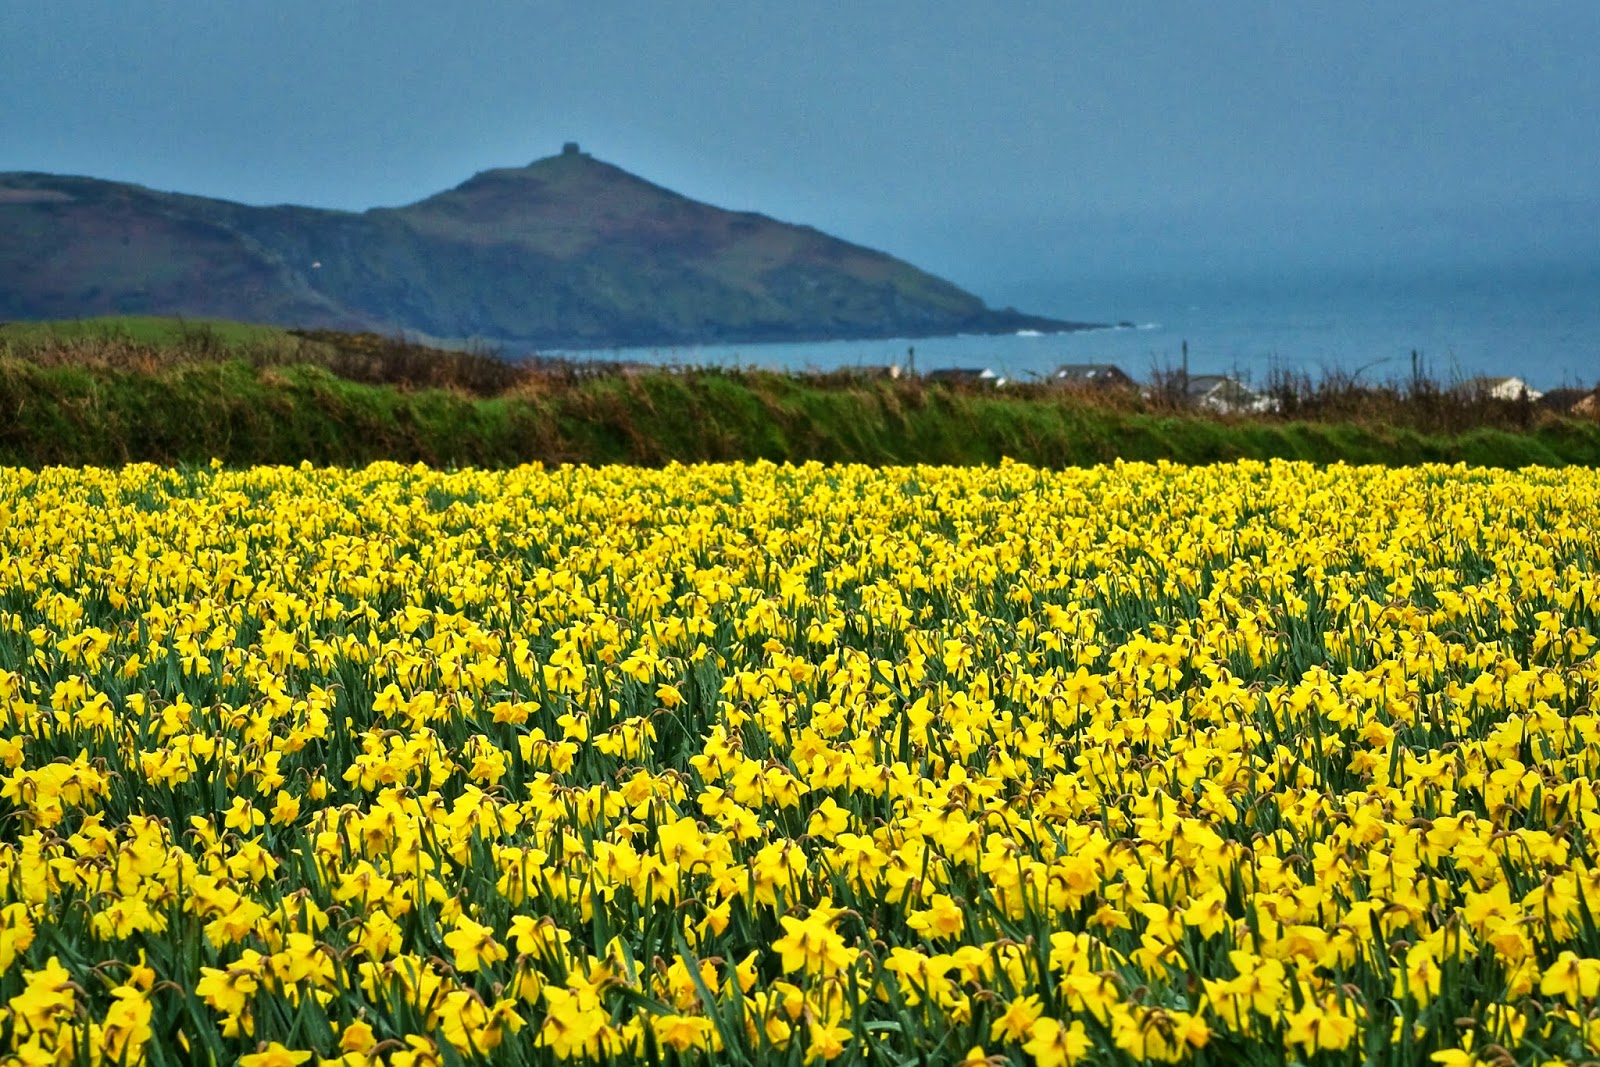 Daffodils by the Sea in Cornwall, UK